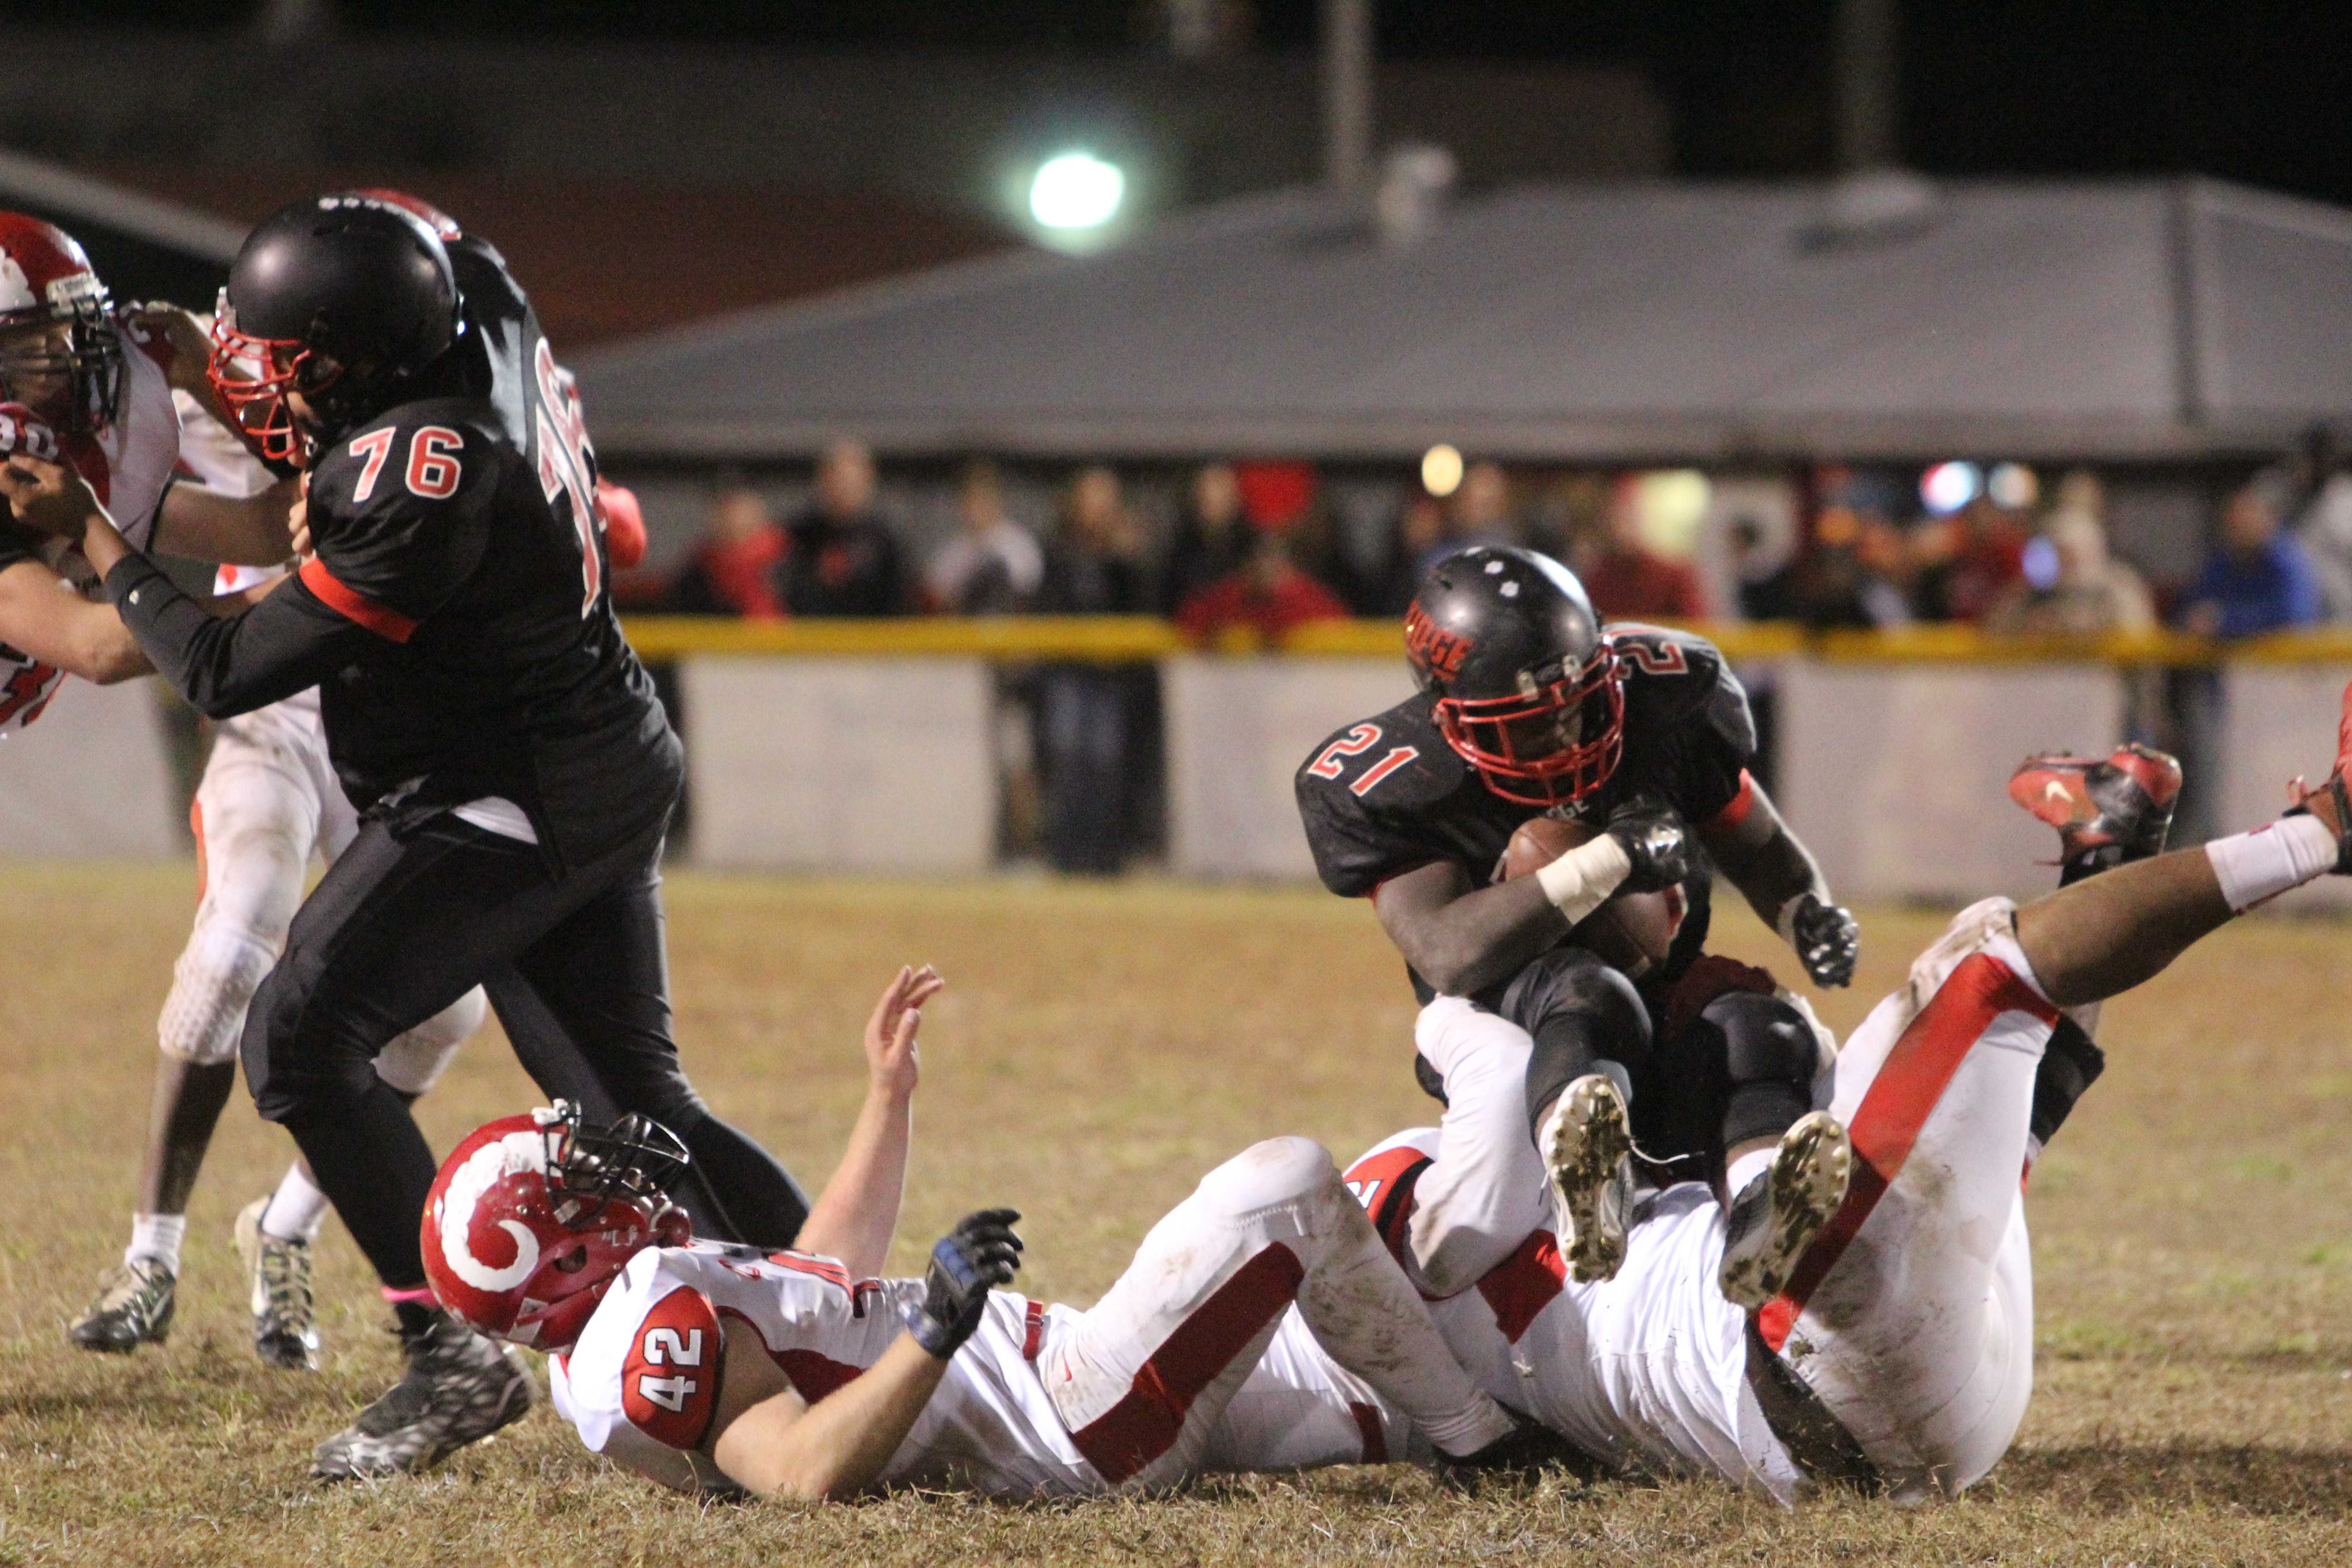 Sean Cleasant (11, #52) and Anthony Kyser (12, #42) take down PRP's Daniel Parker (12, #21). Photo by Kate Hatter